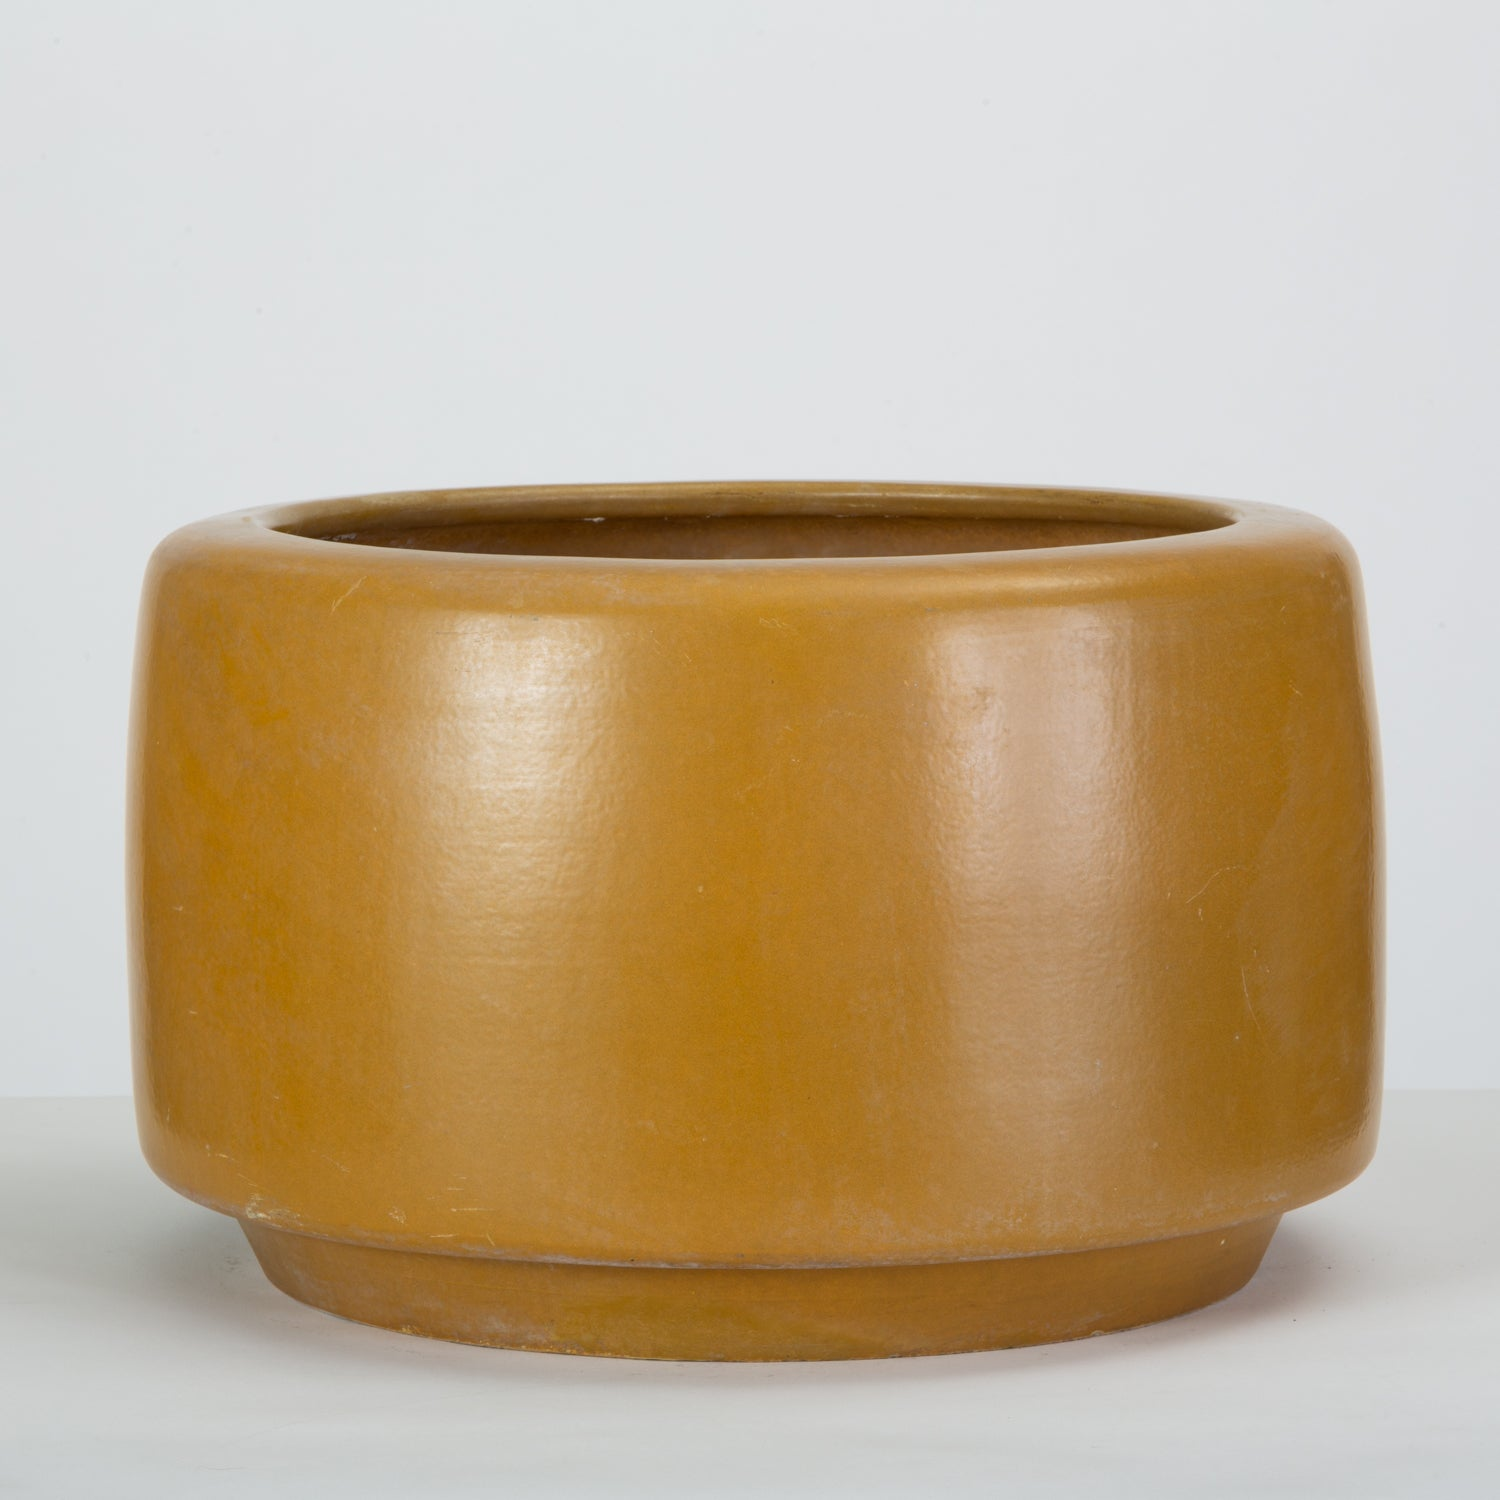 CP-17 Tire Planter by John Follis  for Architectural Pottery in Yellow Ochre Glaze